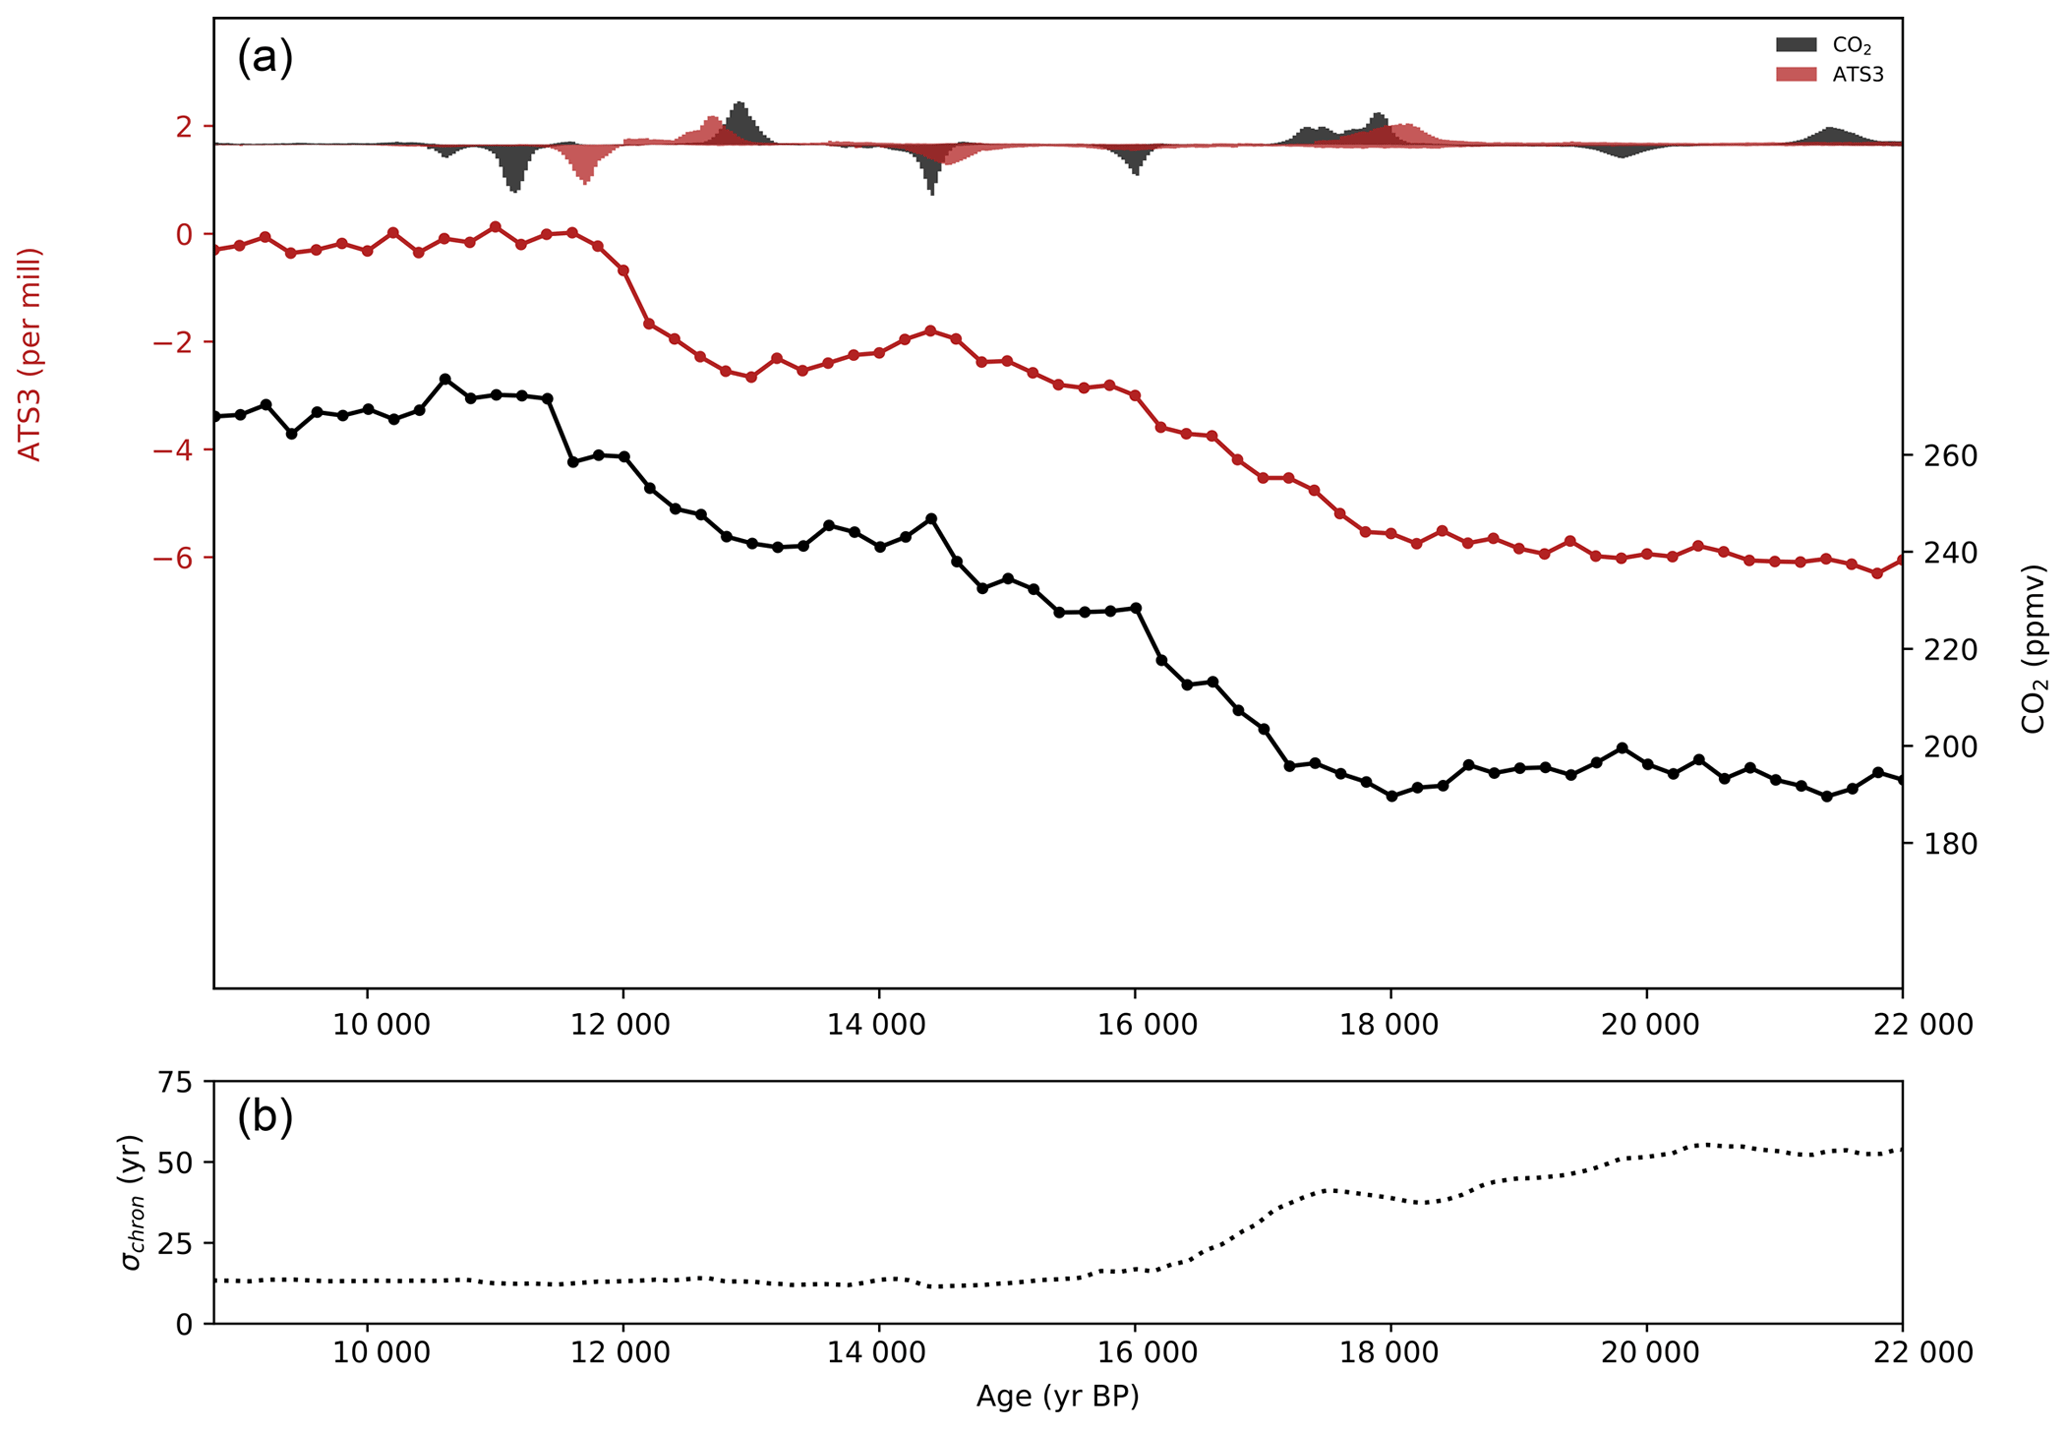 CP - Antarctic temperature and CO2: near-synchrony yet variable